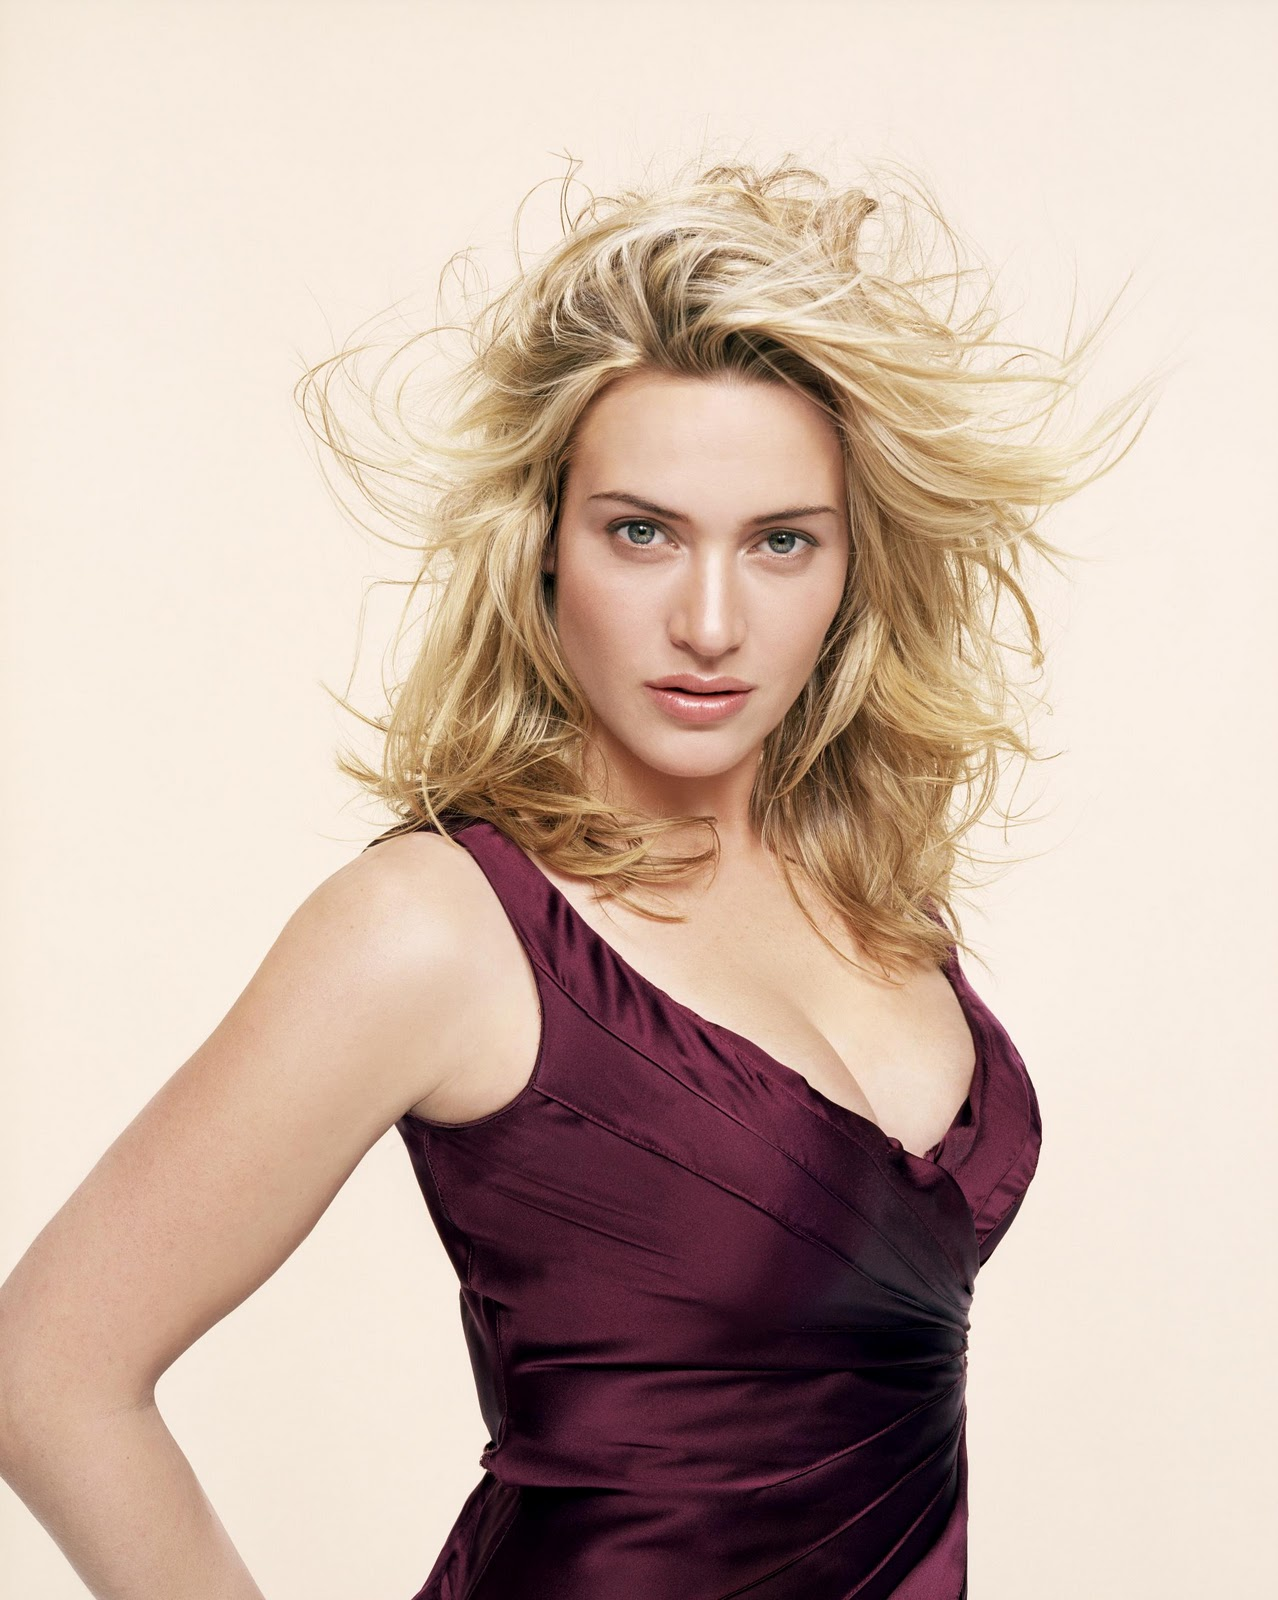 http://1.bp.blogspot.com/-WYnasquNyCE/ToojWp9YhkI/AAAAAAAAGIA/PWh5bjylR1M/s1600/Kate+Winslepics-hairstyles-Kate+Winslet+hot-titanic-wallpapers-gallery+%25289%2529.jpg